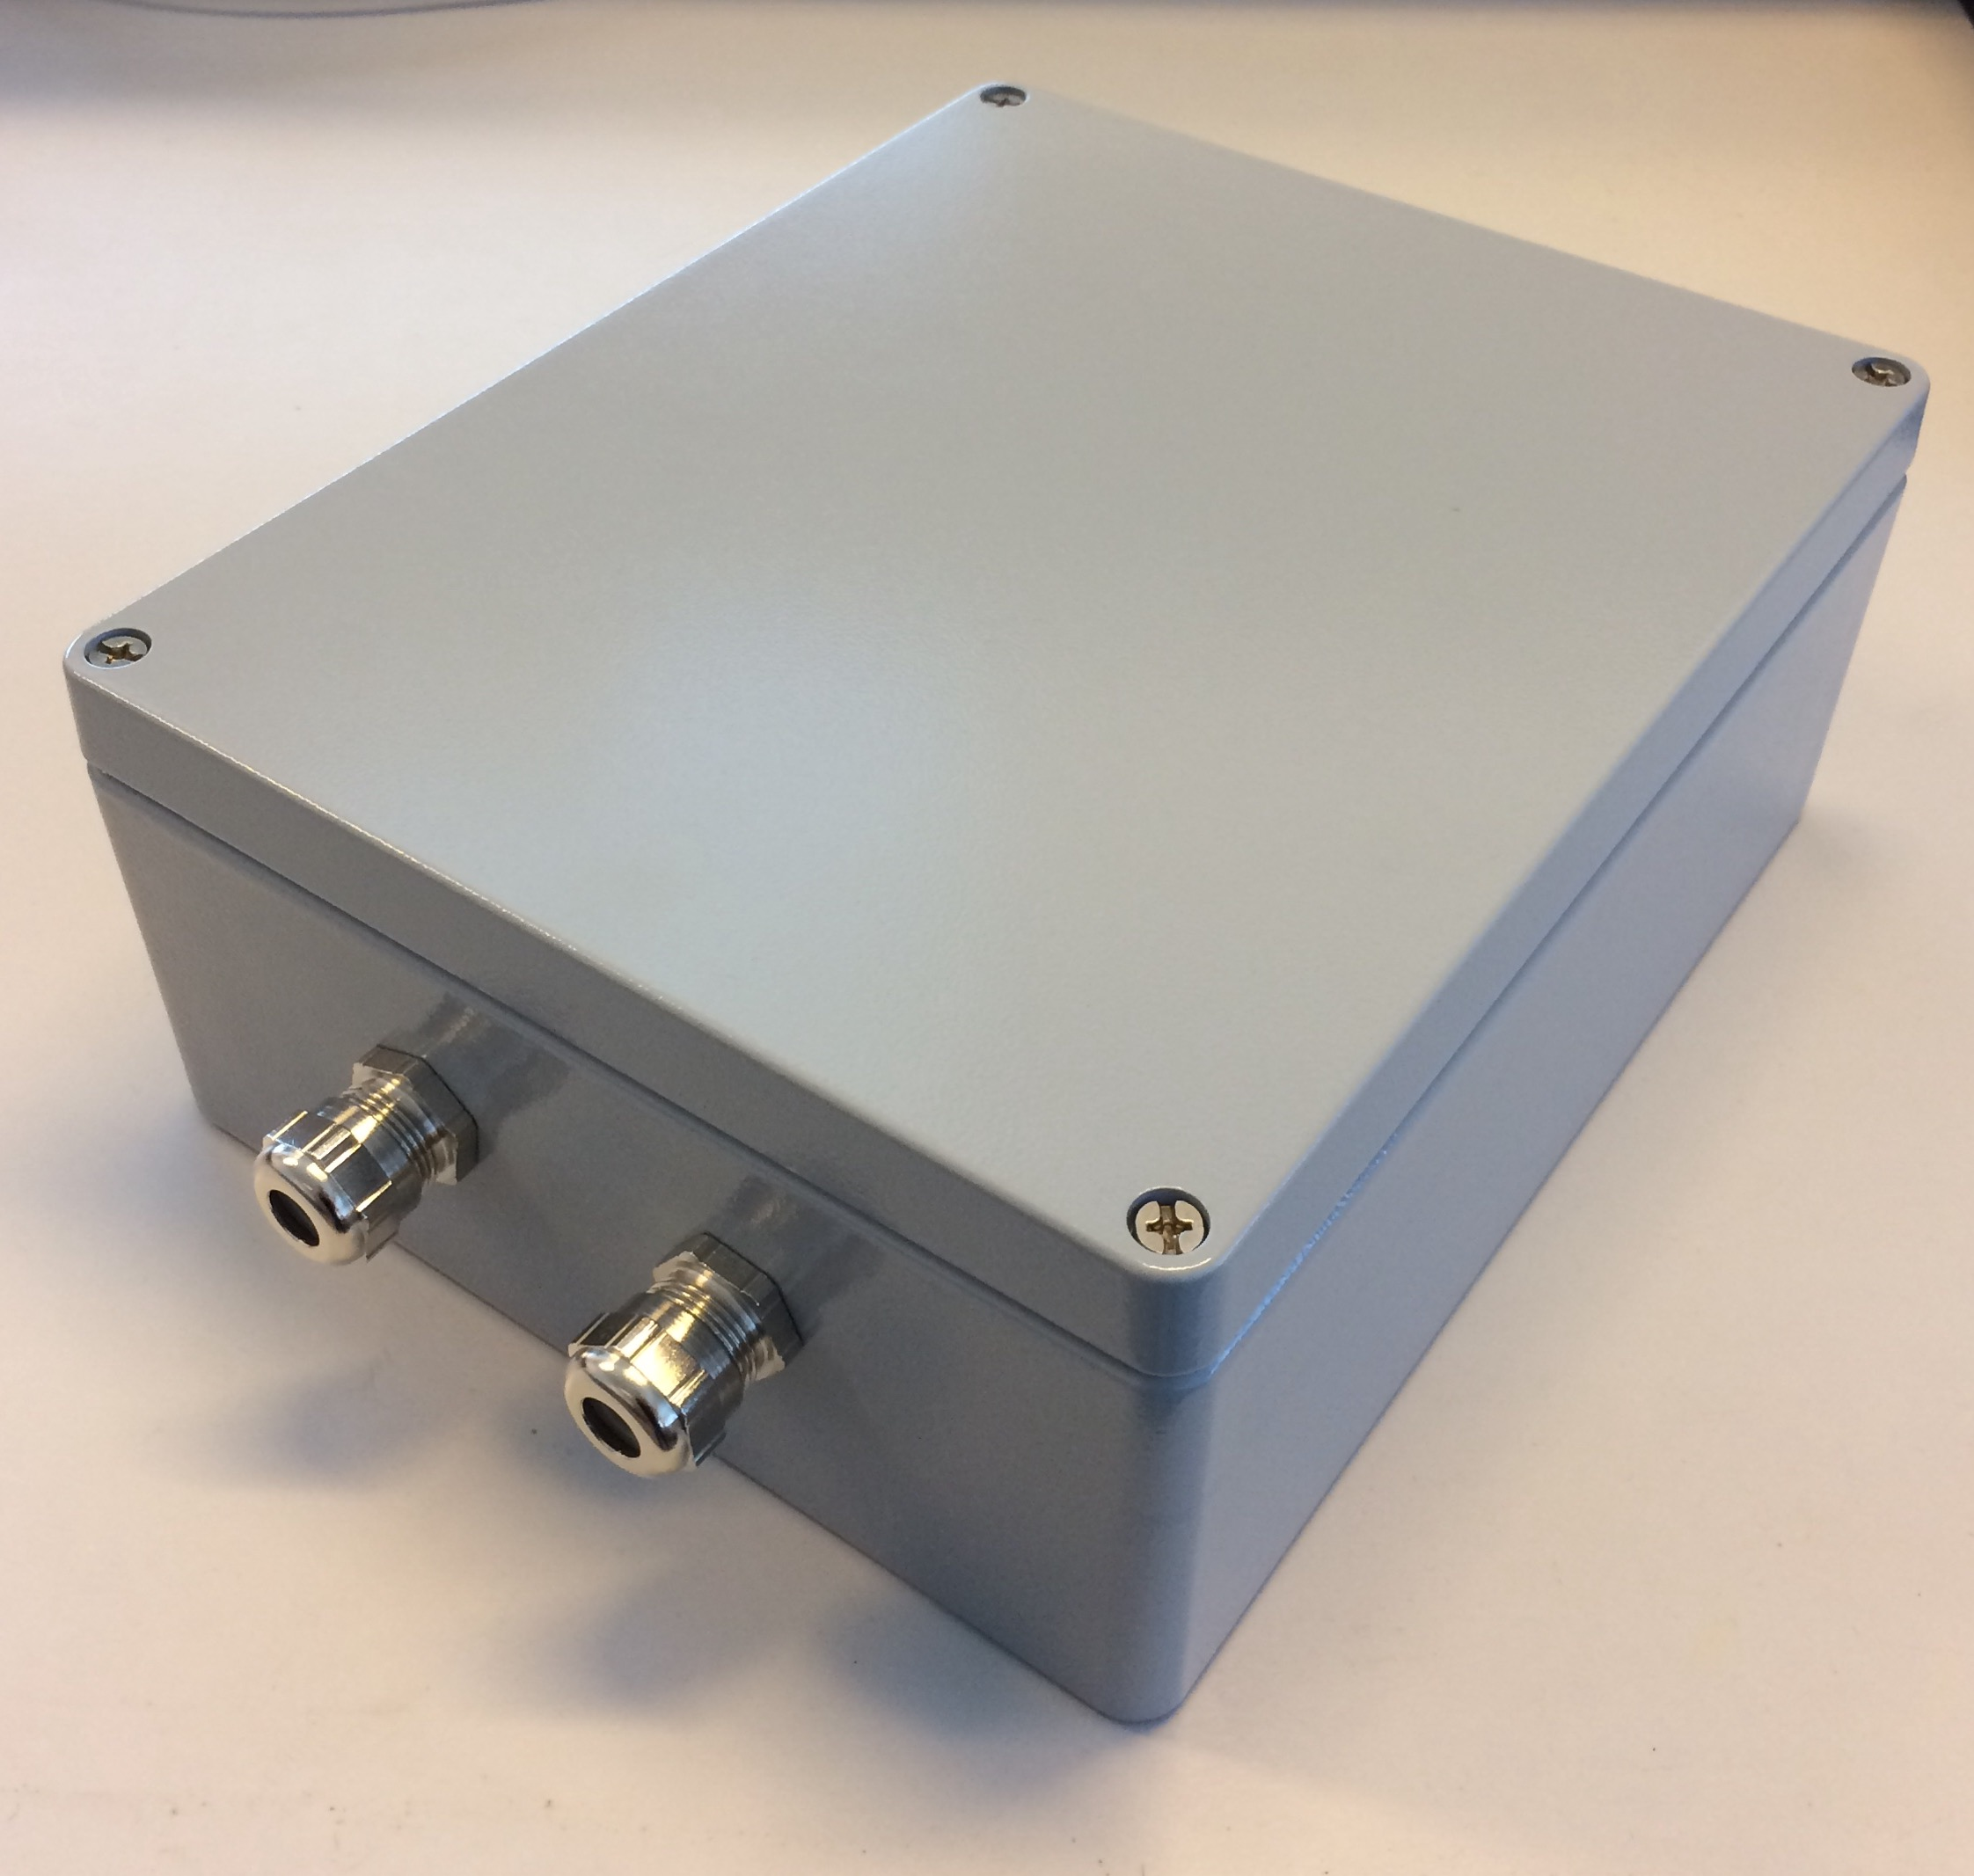 IP-CRB-1 IP based control relay box picture